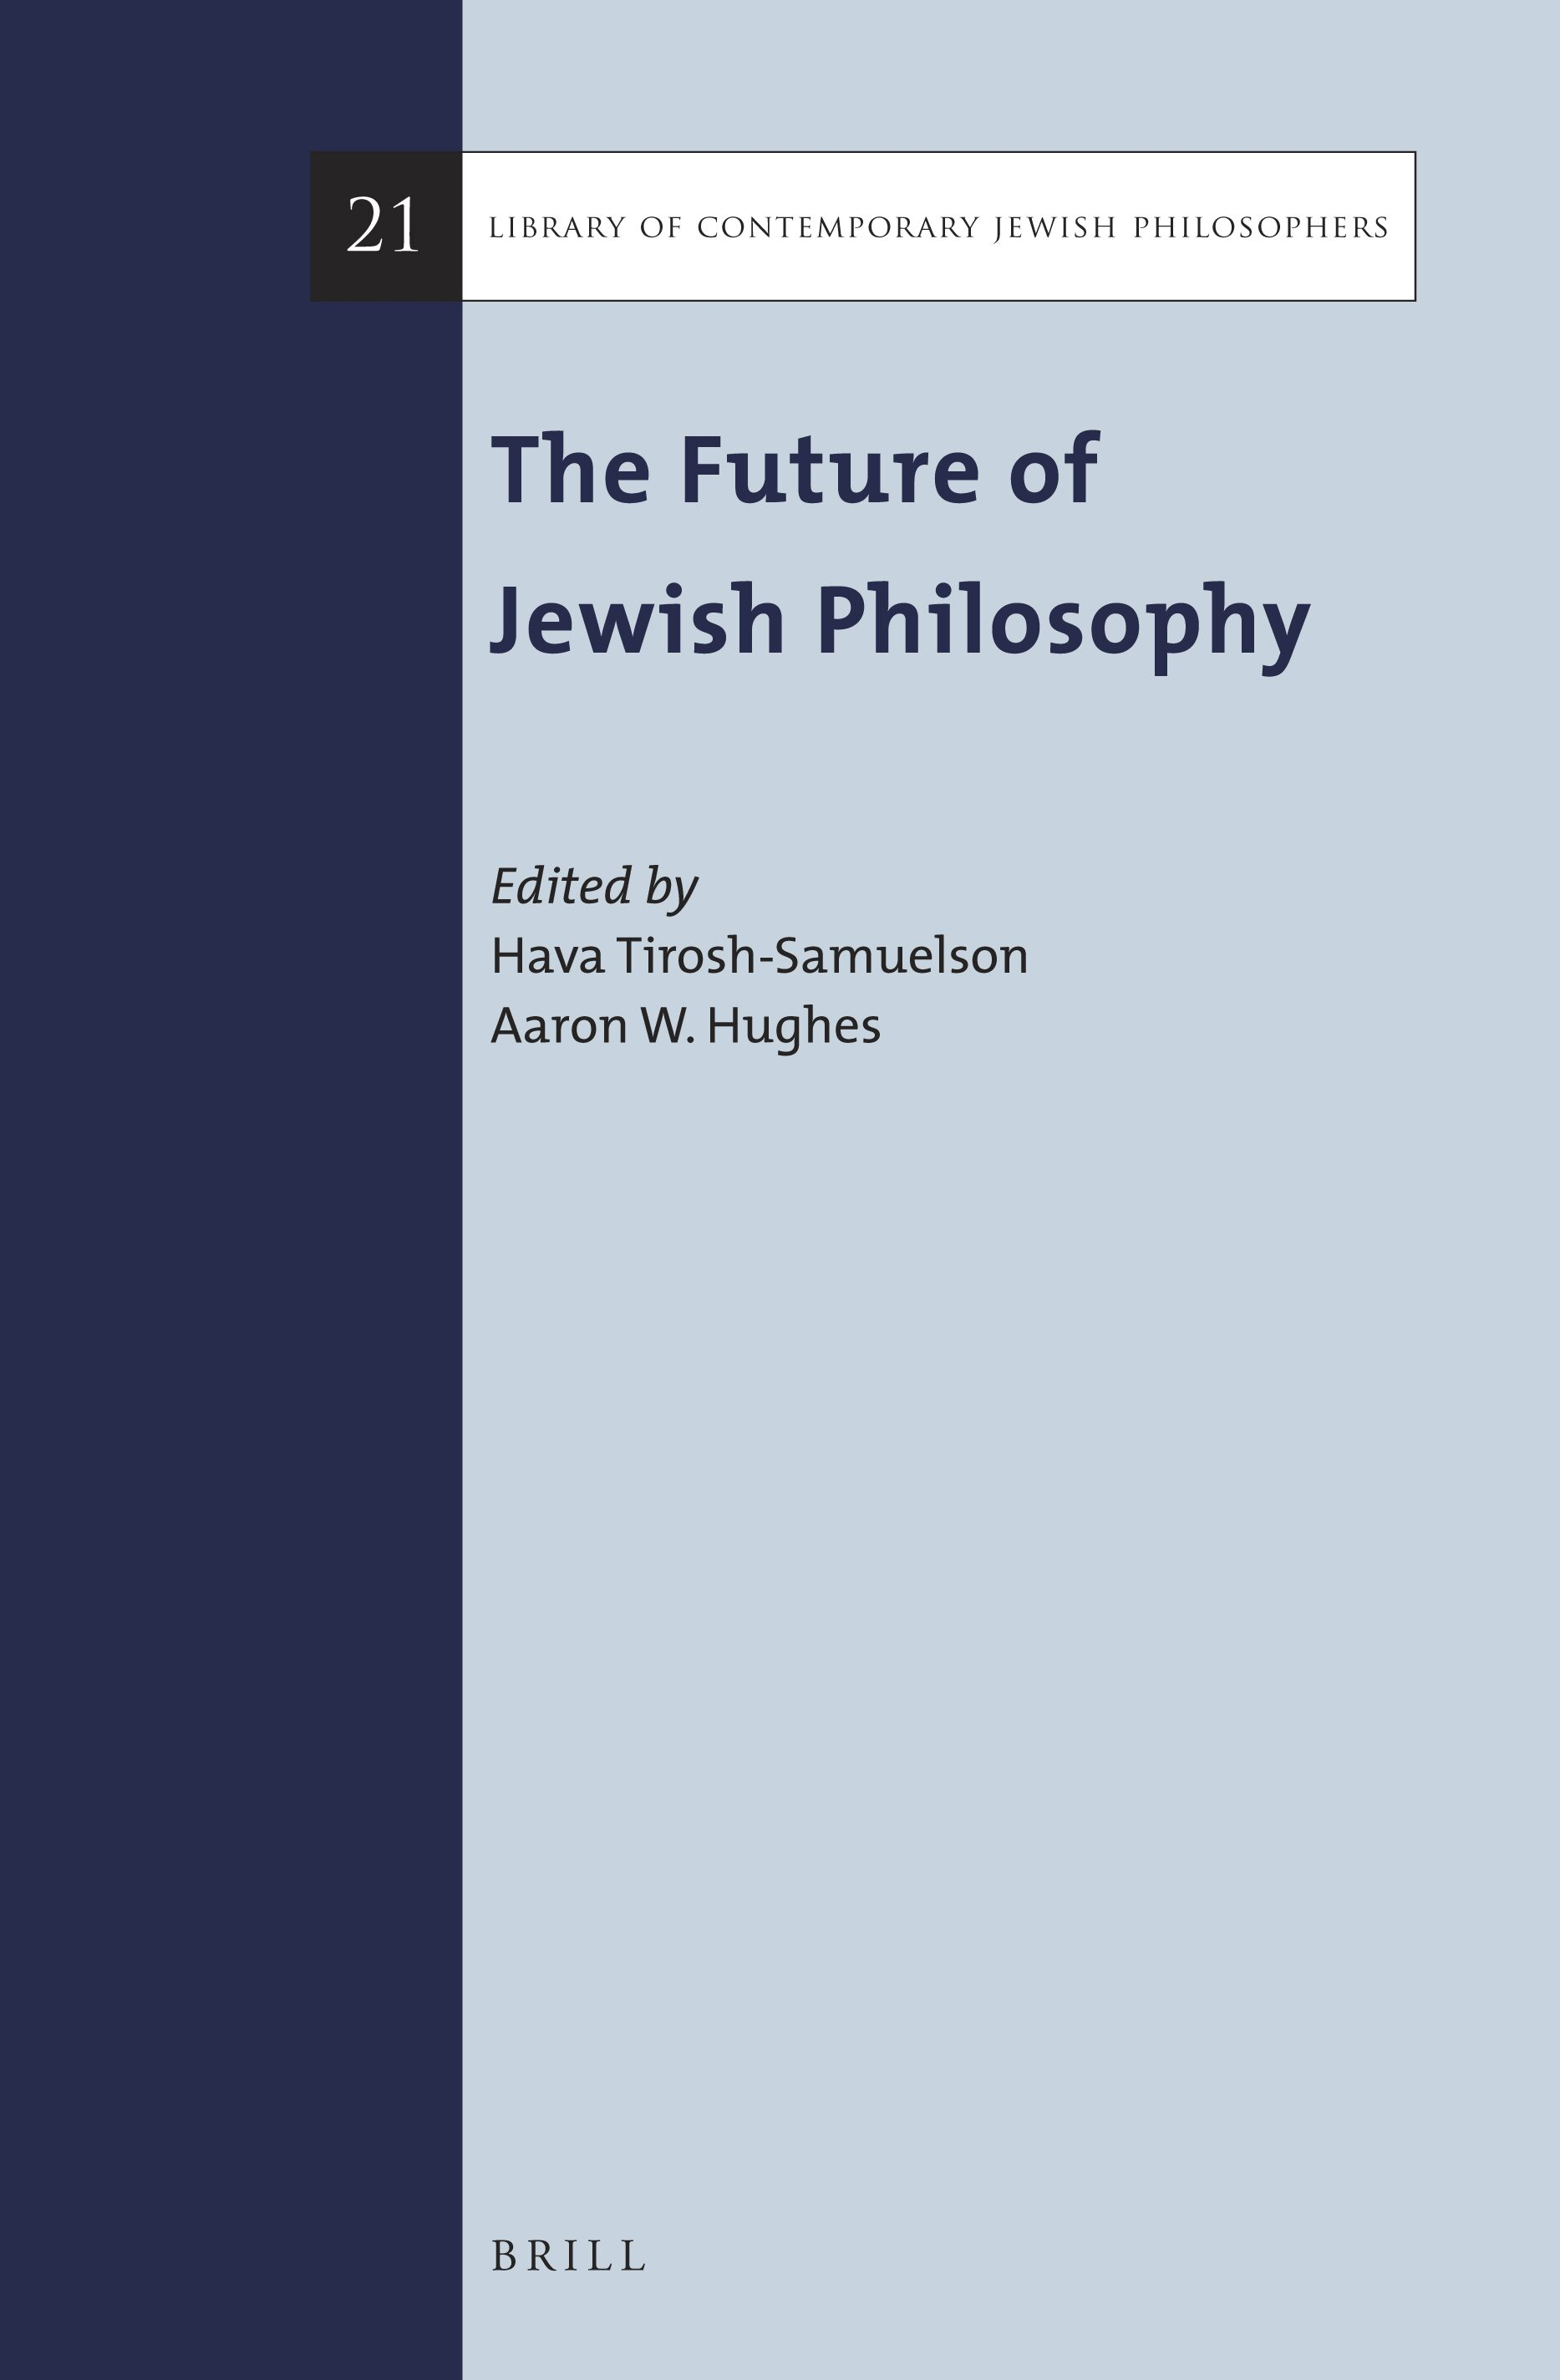 Jewish Philosophy As Cultural Practice In The Future Of